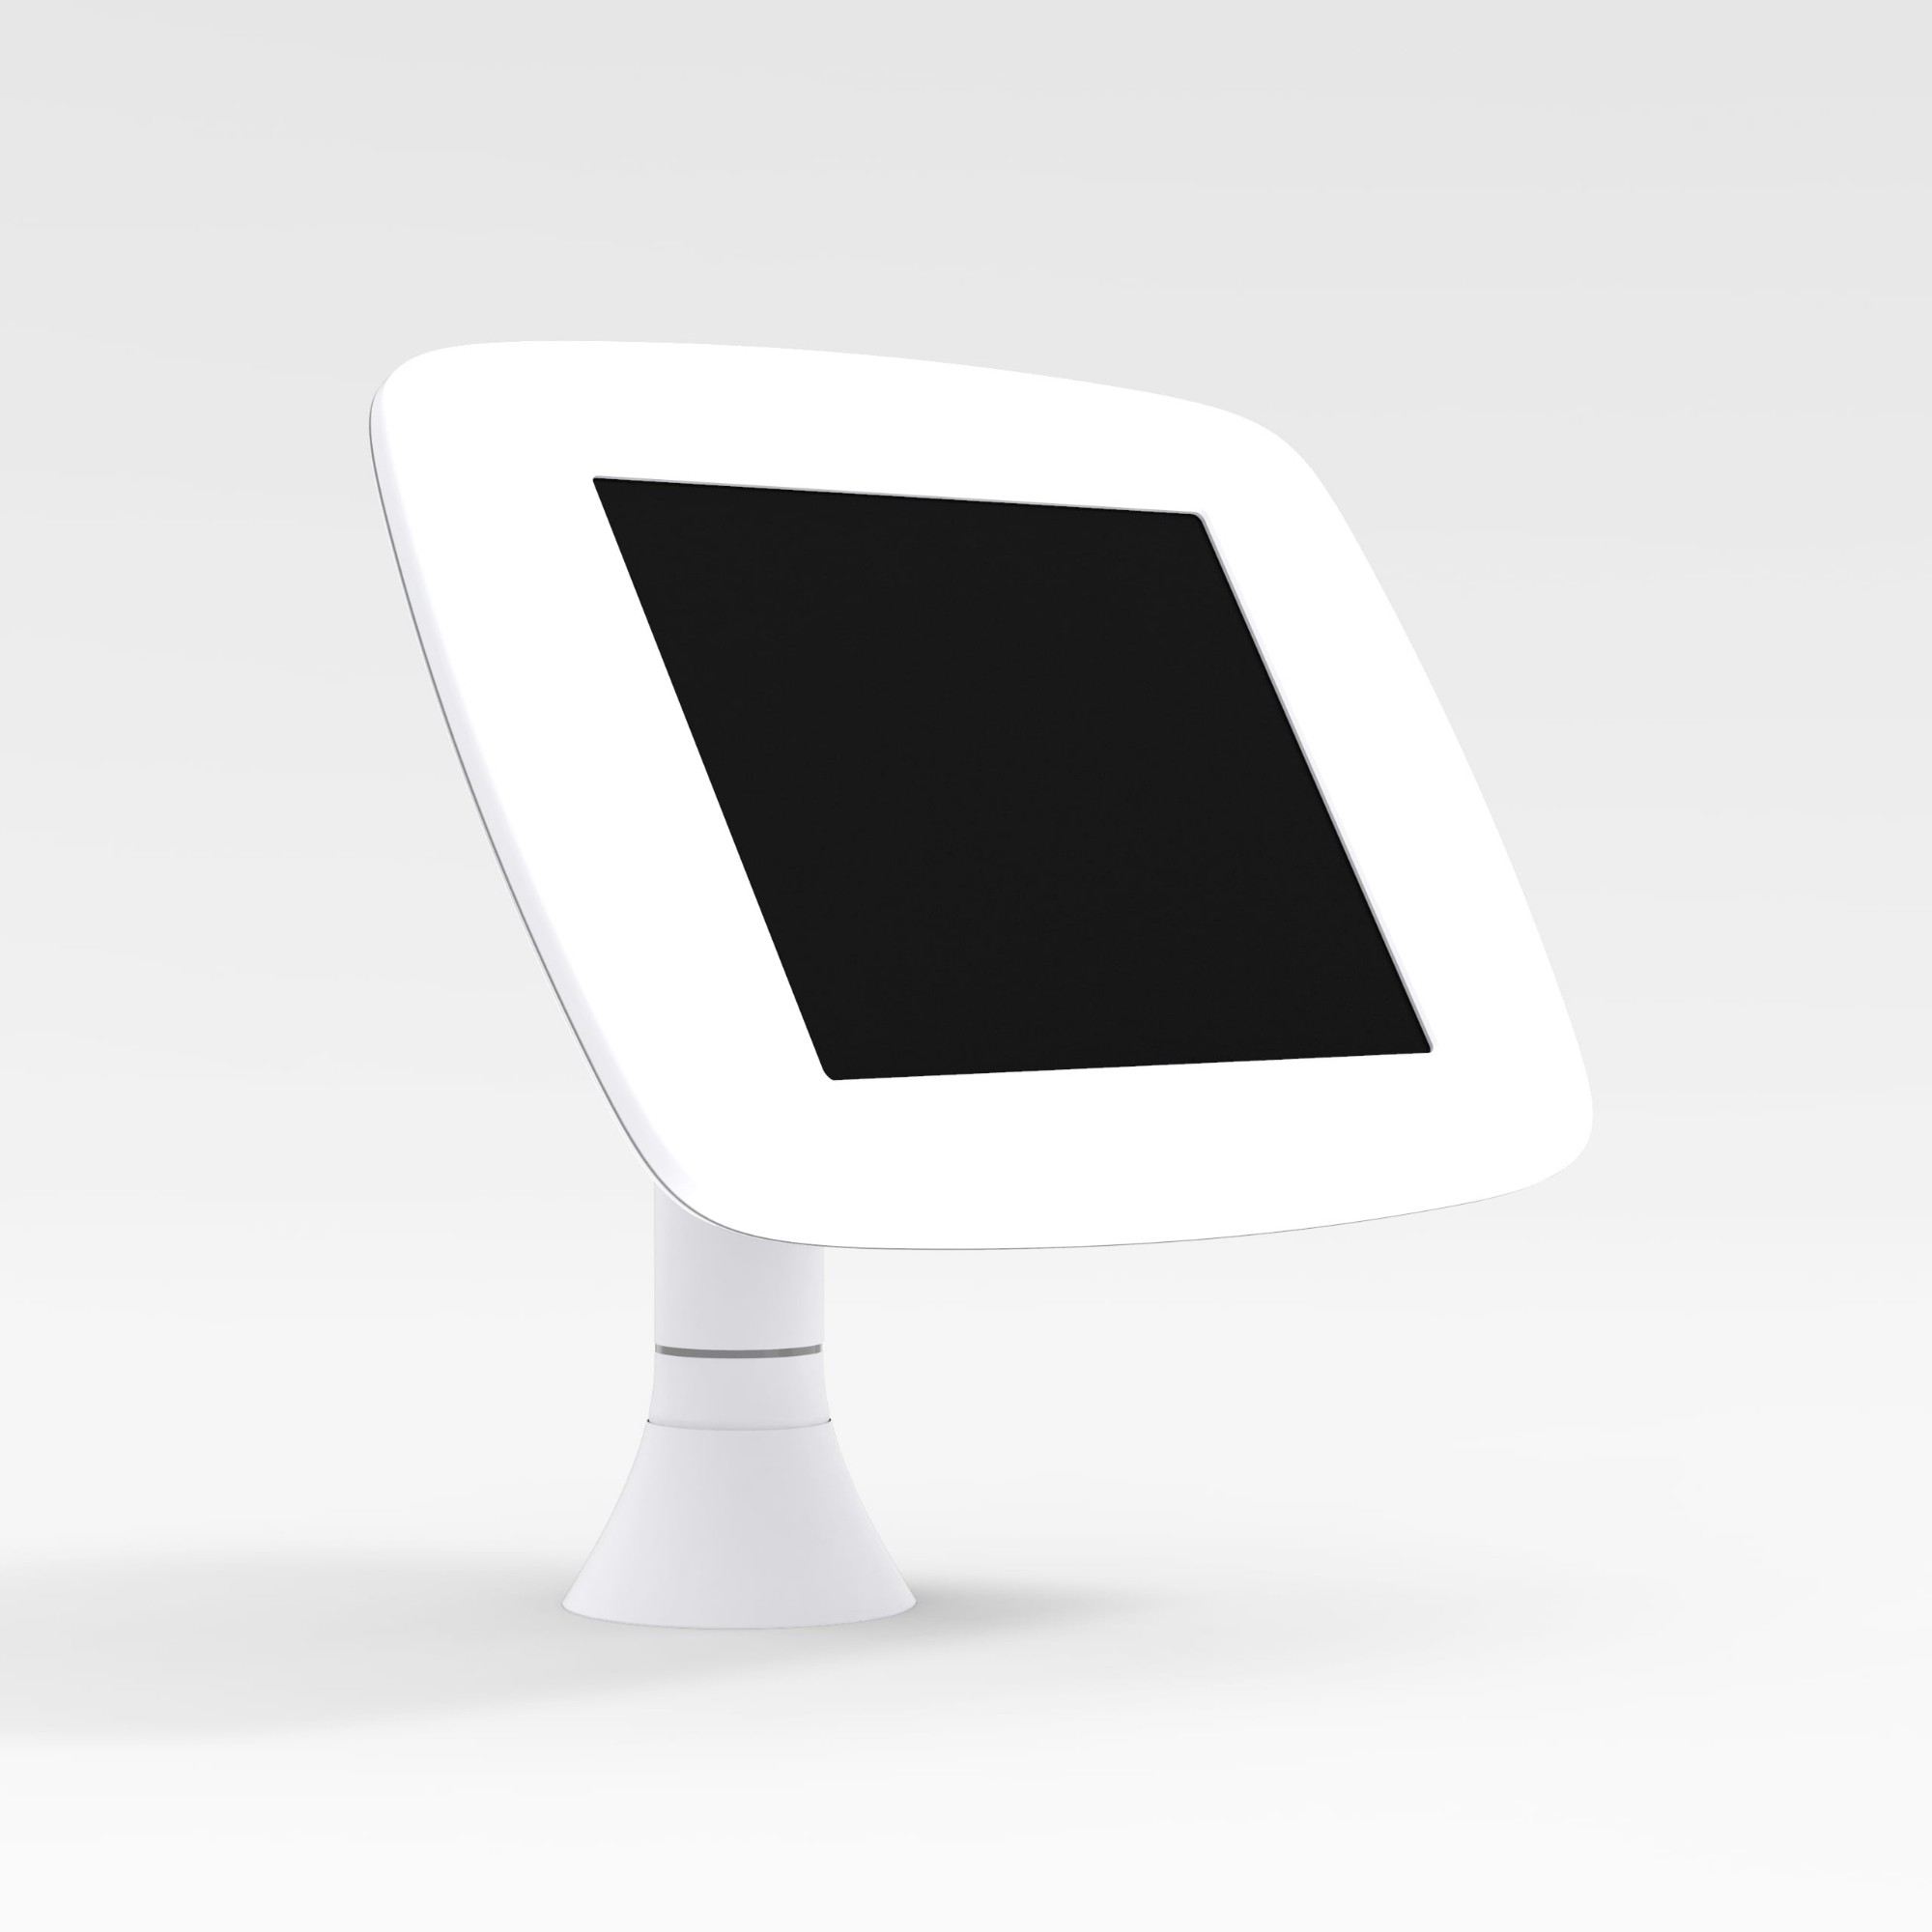 Bouncepad Sumo   Apple iPad 3rd Gen 9.7 (2012)   White   Covered Front Camera and Home Button   Rotate 270 / Switch Off  